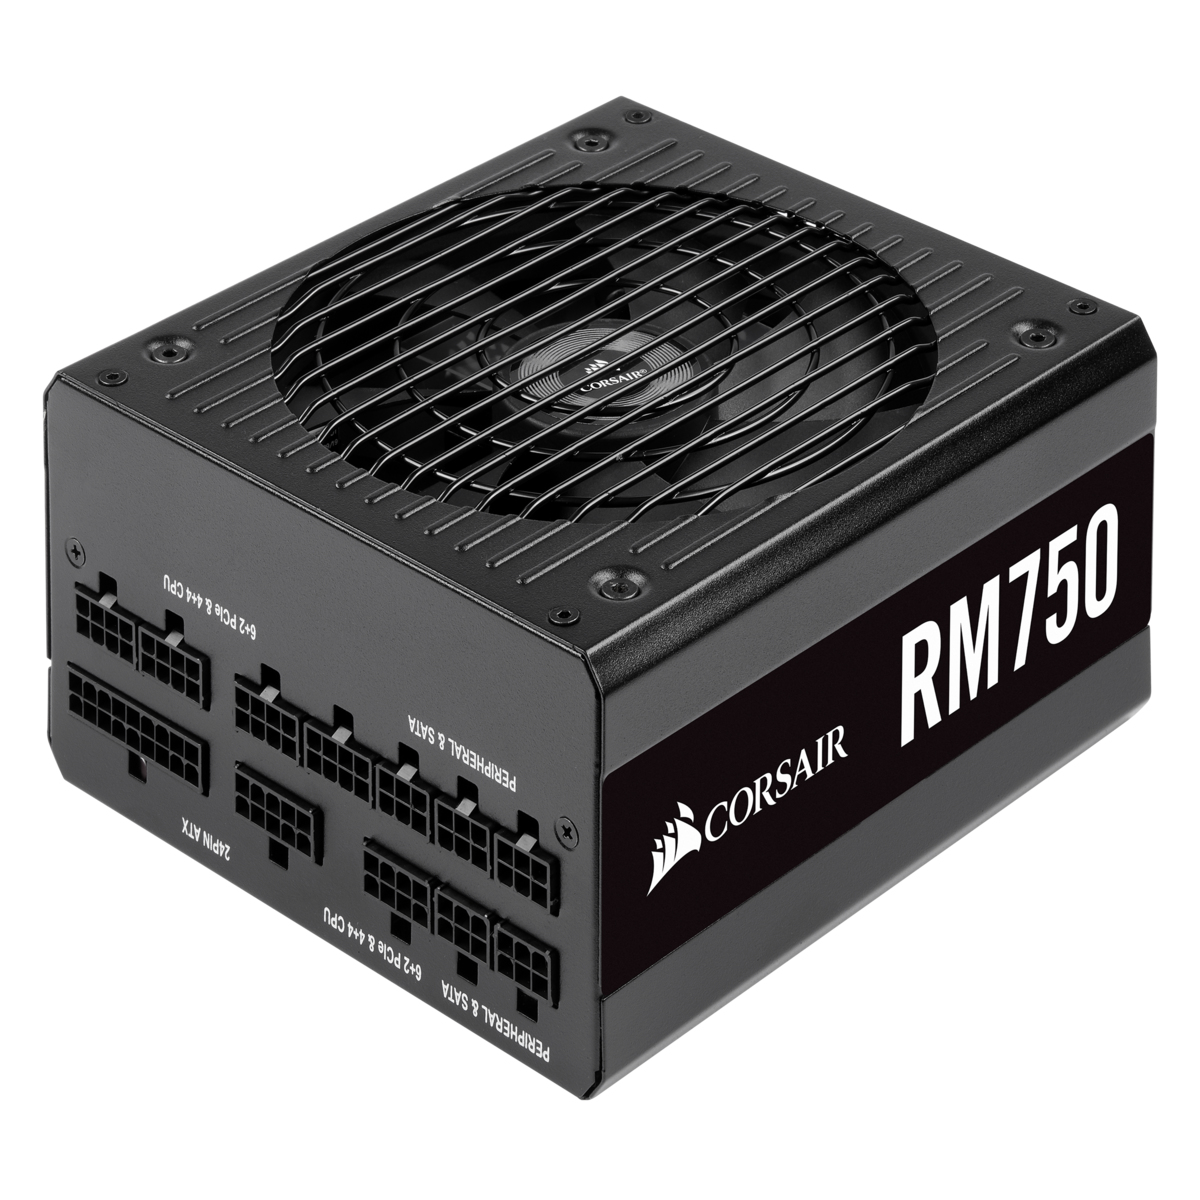 Corsair RM750 power supply unit 750 W ATX Black